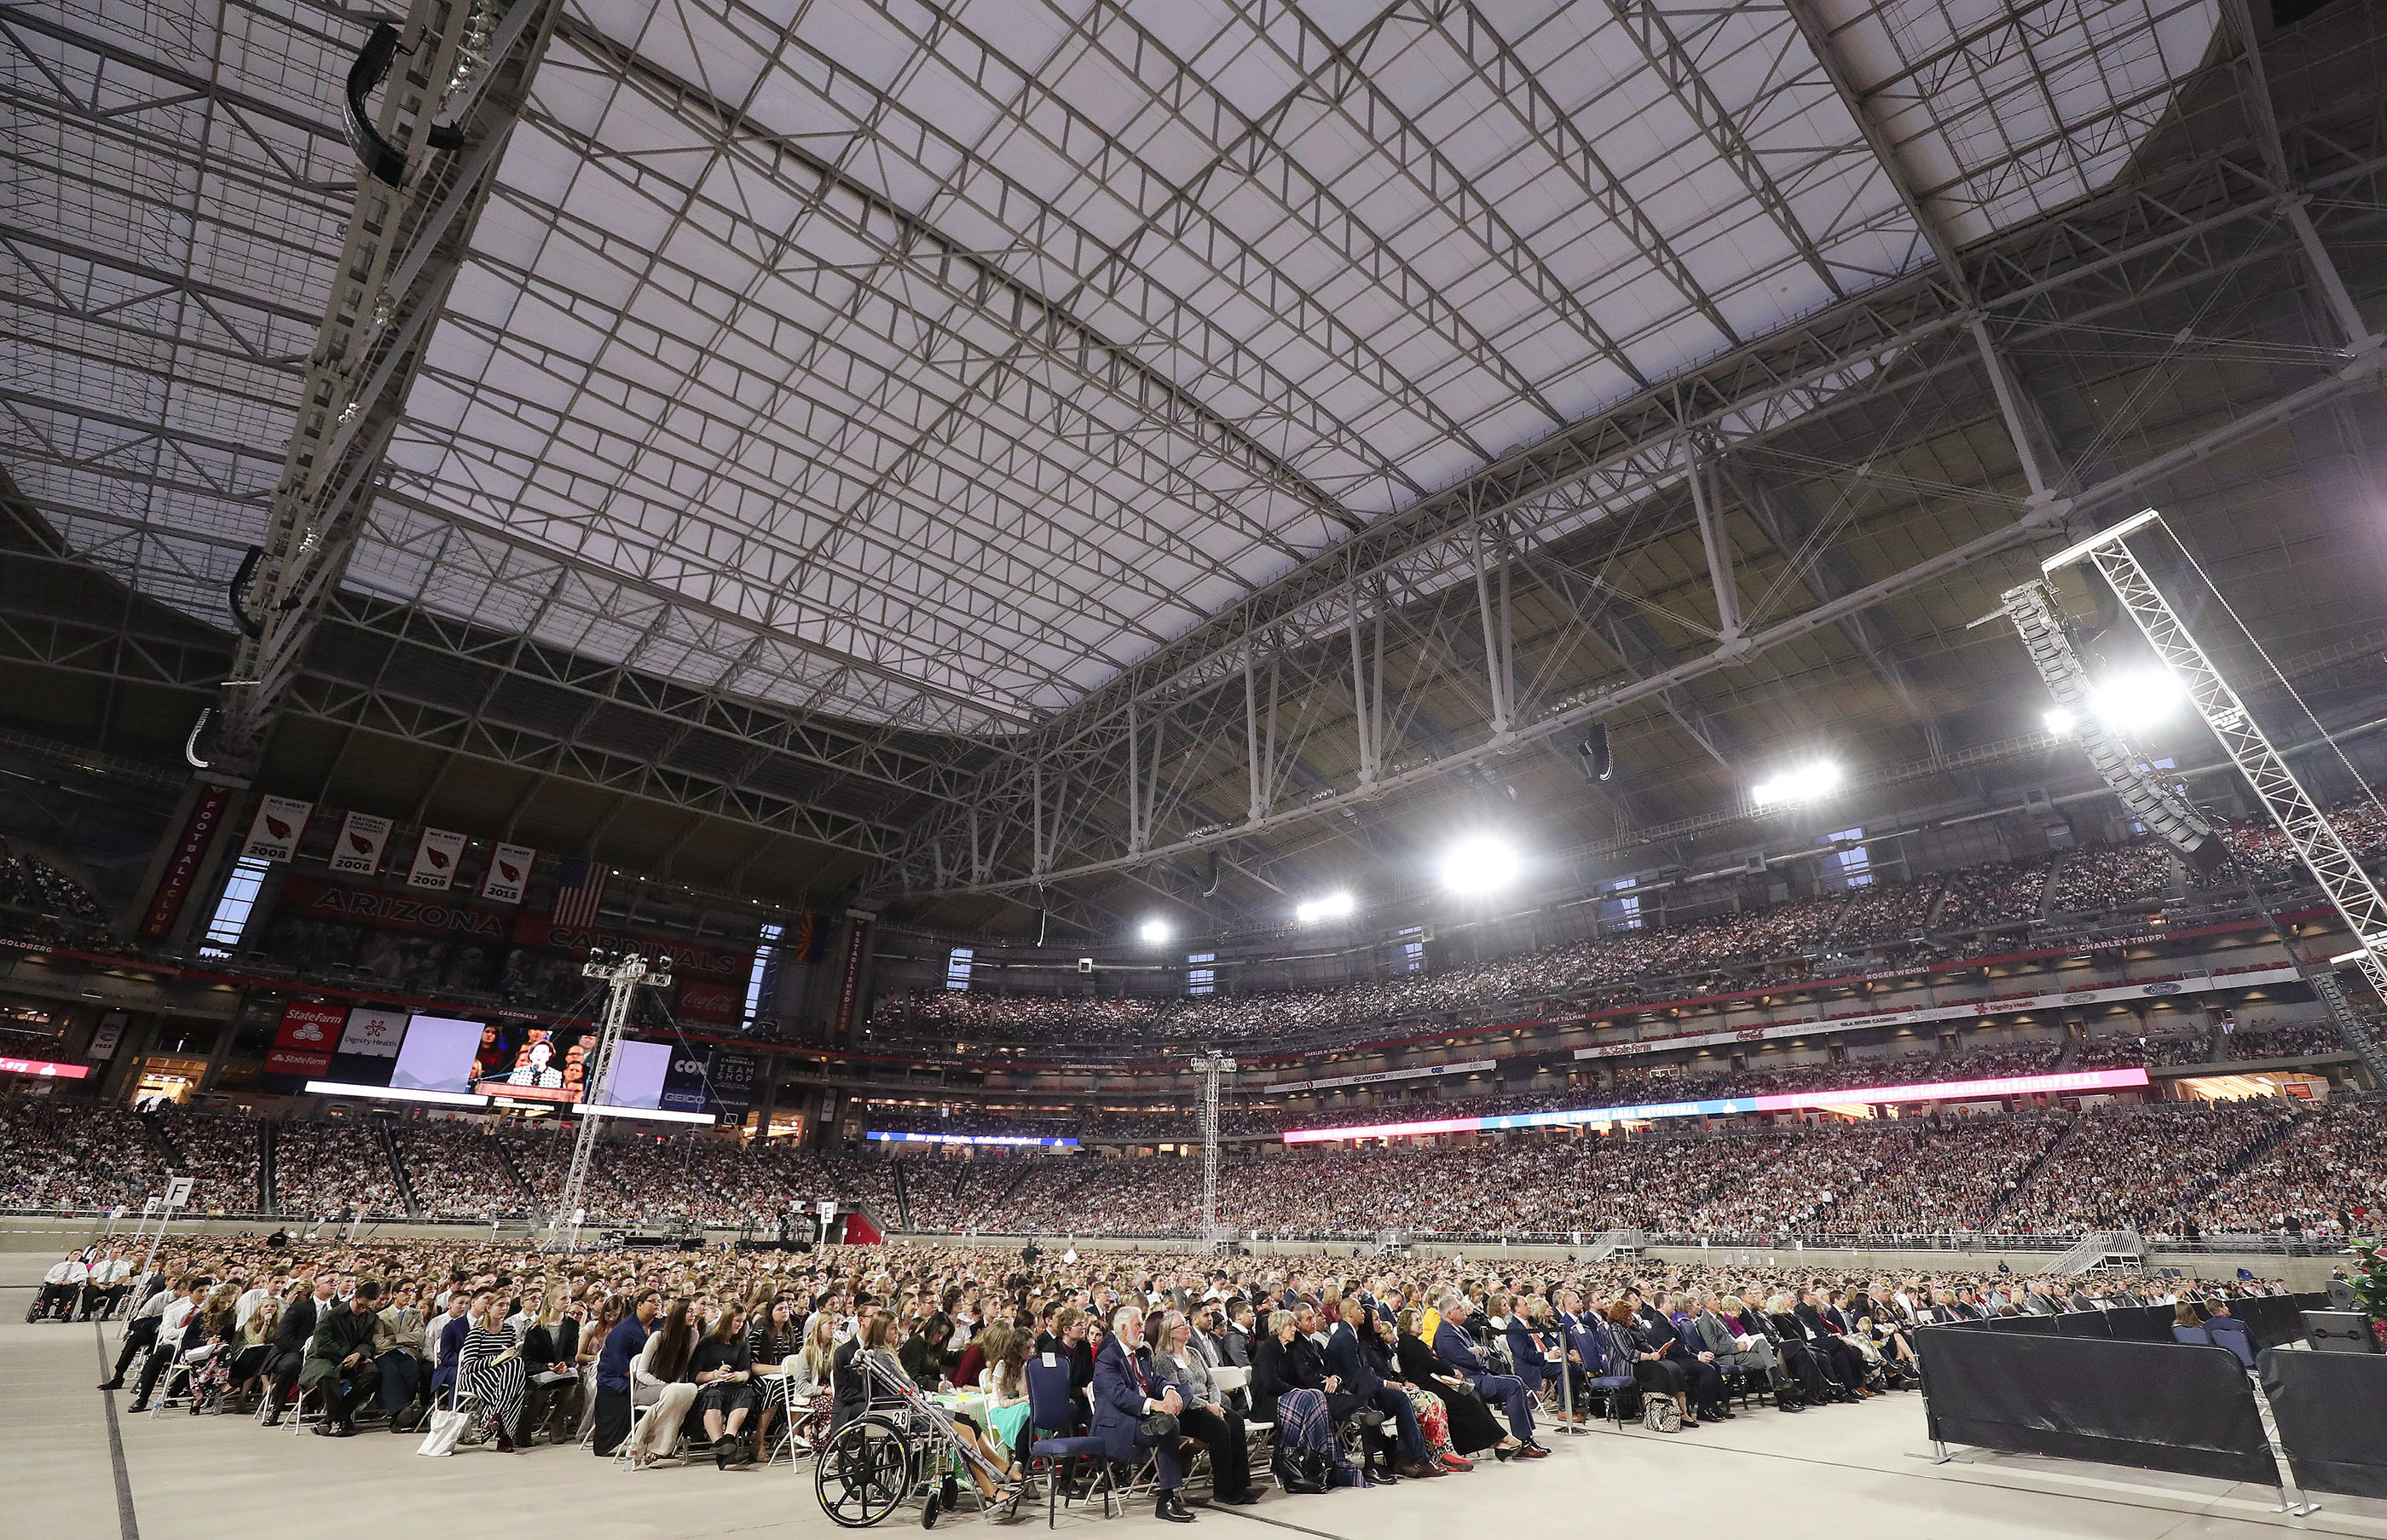 Attendees listen during a devotional at the State Farm Stadium in Phoenix on Sunday, Feb. 10, 2019.